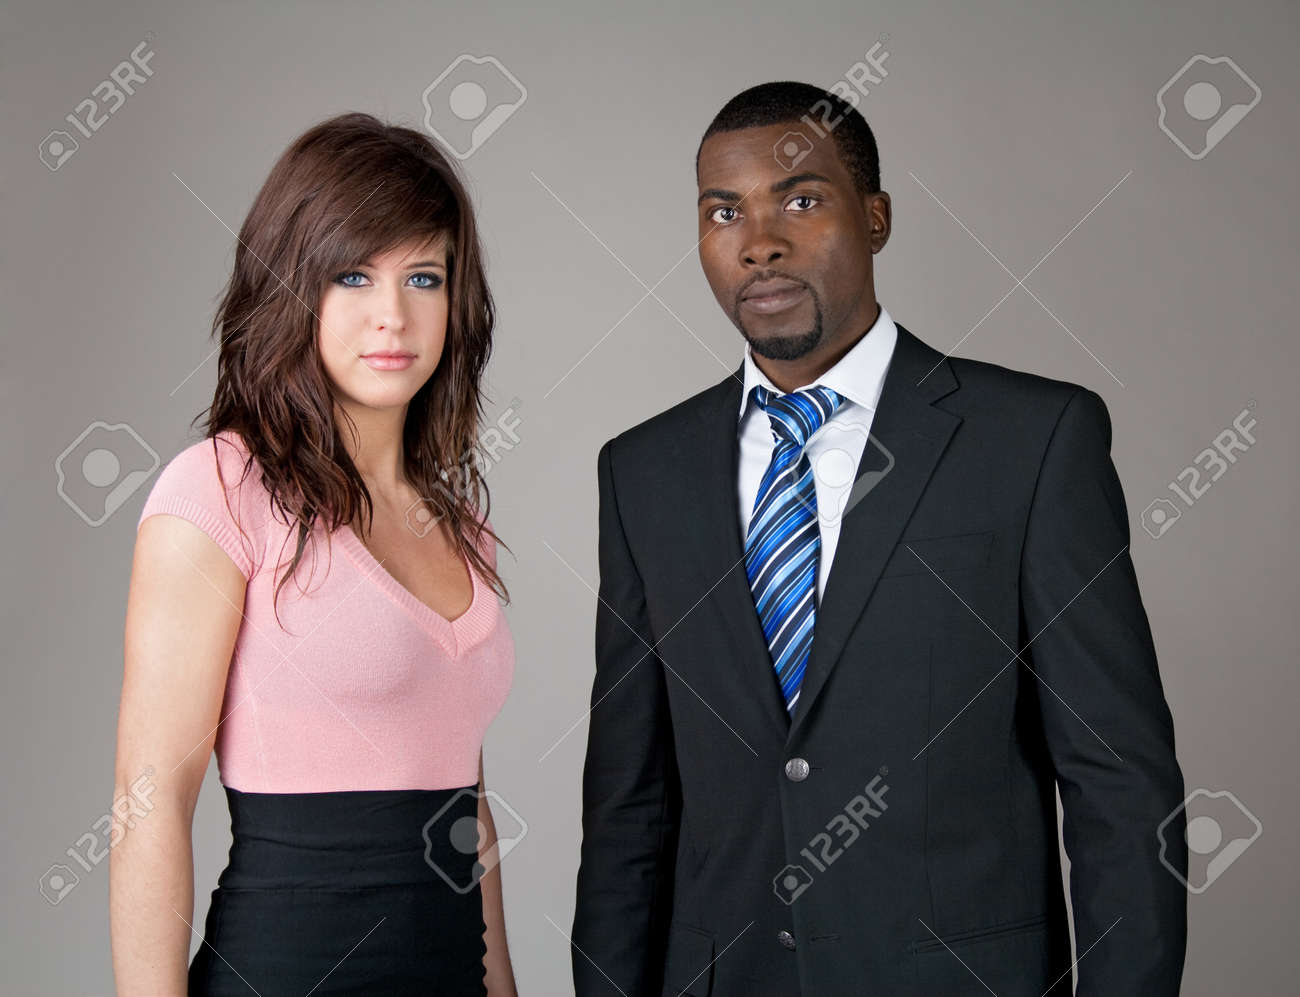 Portrait of young business partners, Caucasian woman and African American man Stock Photo - 12972856